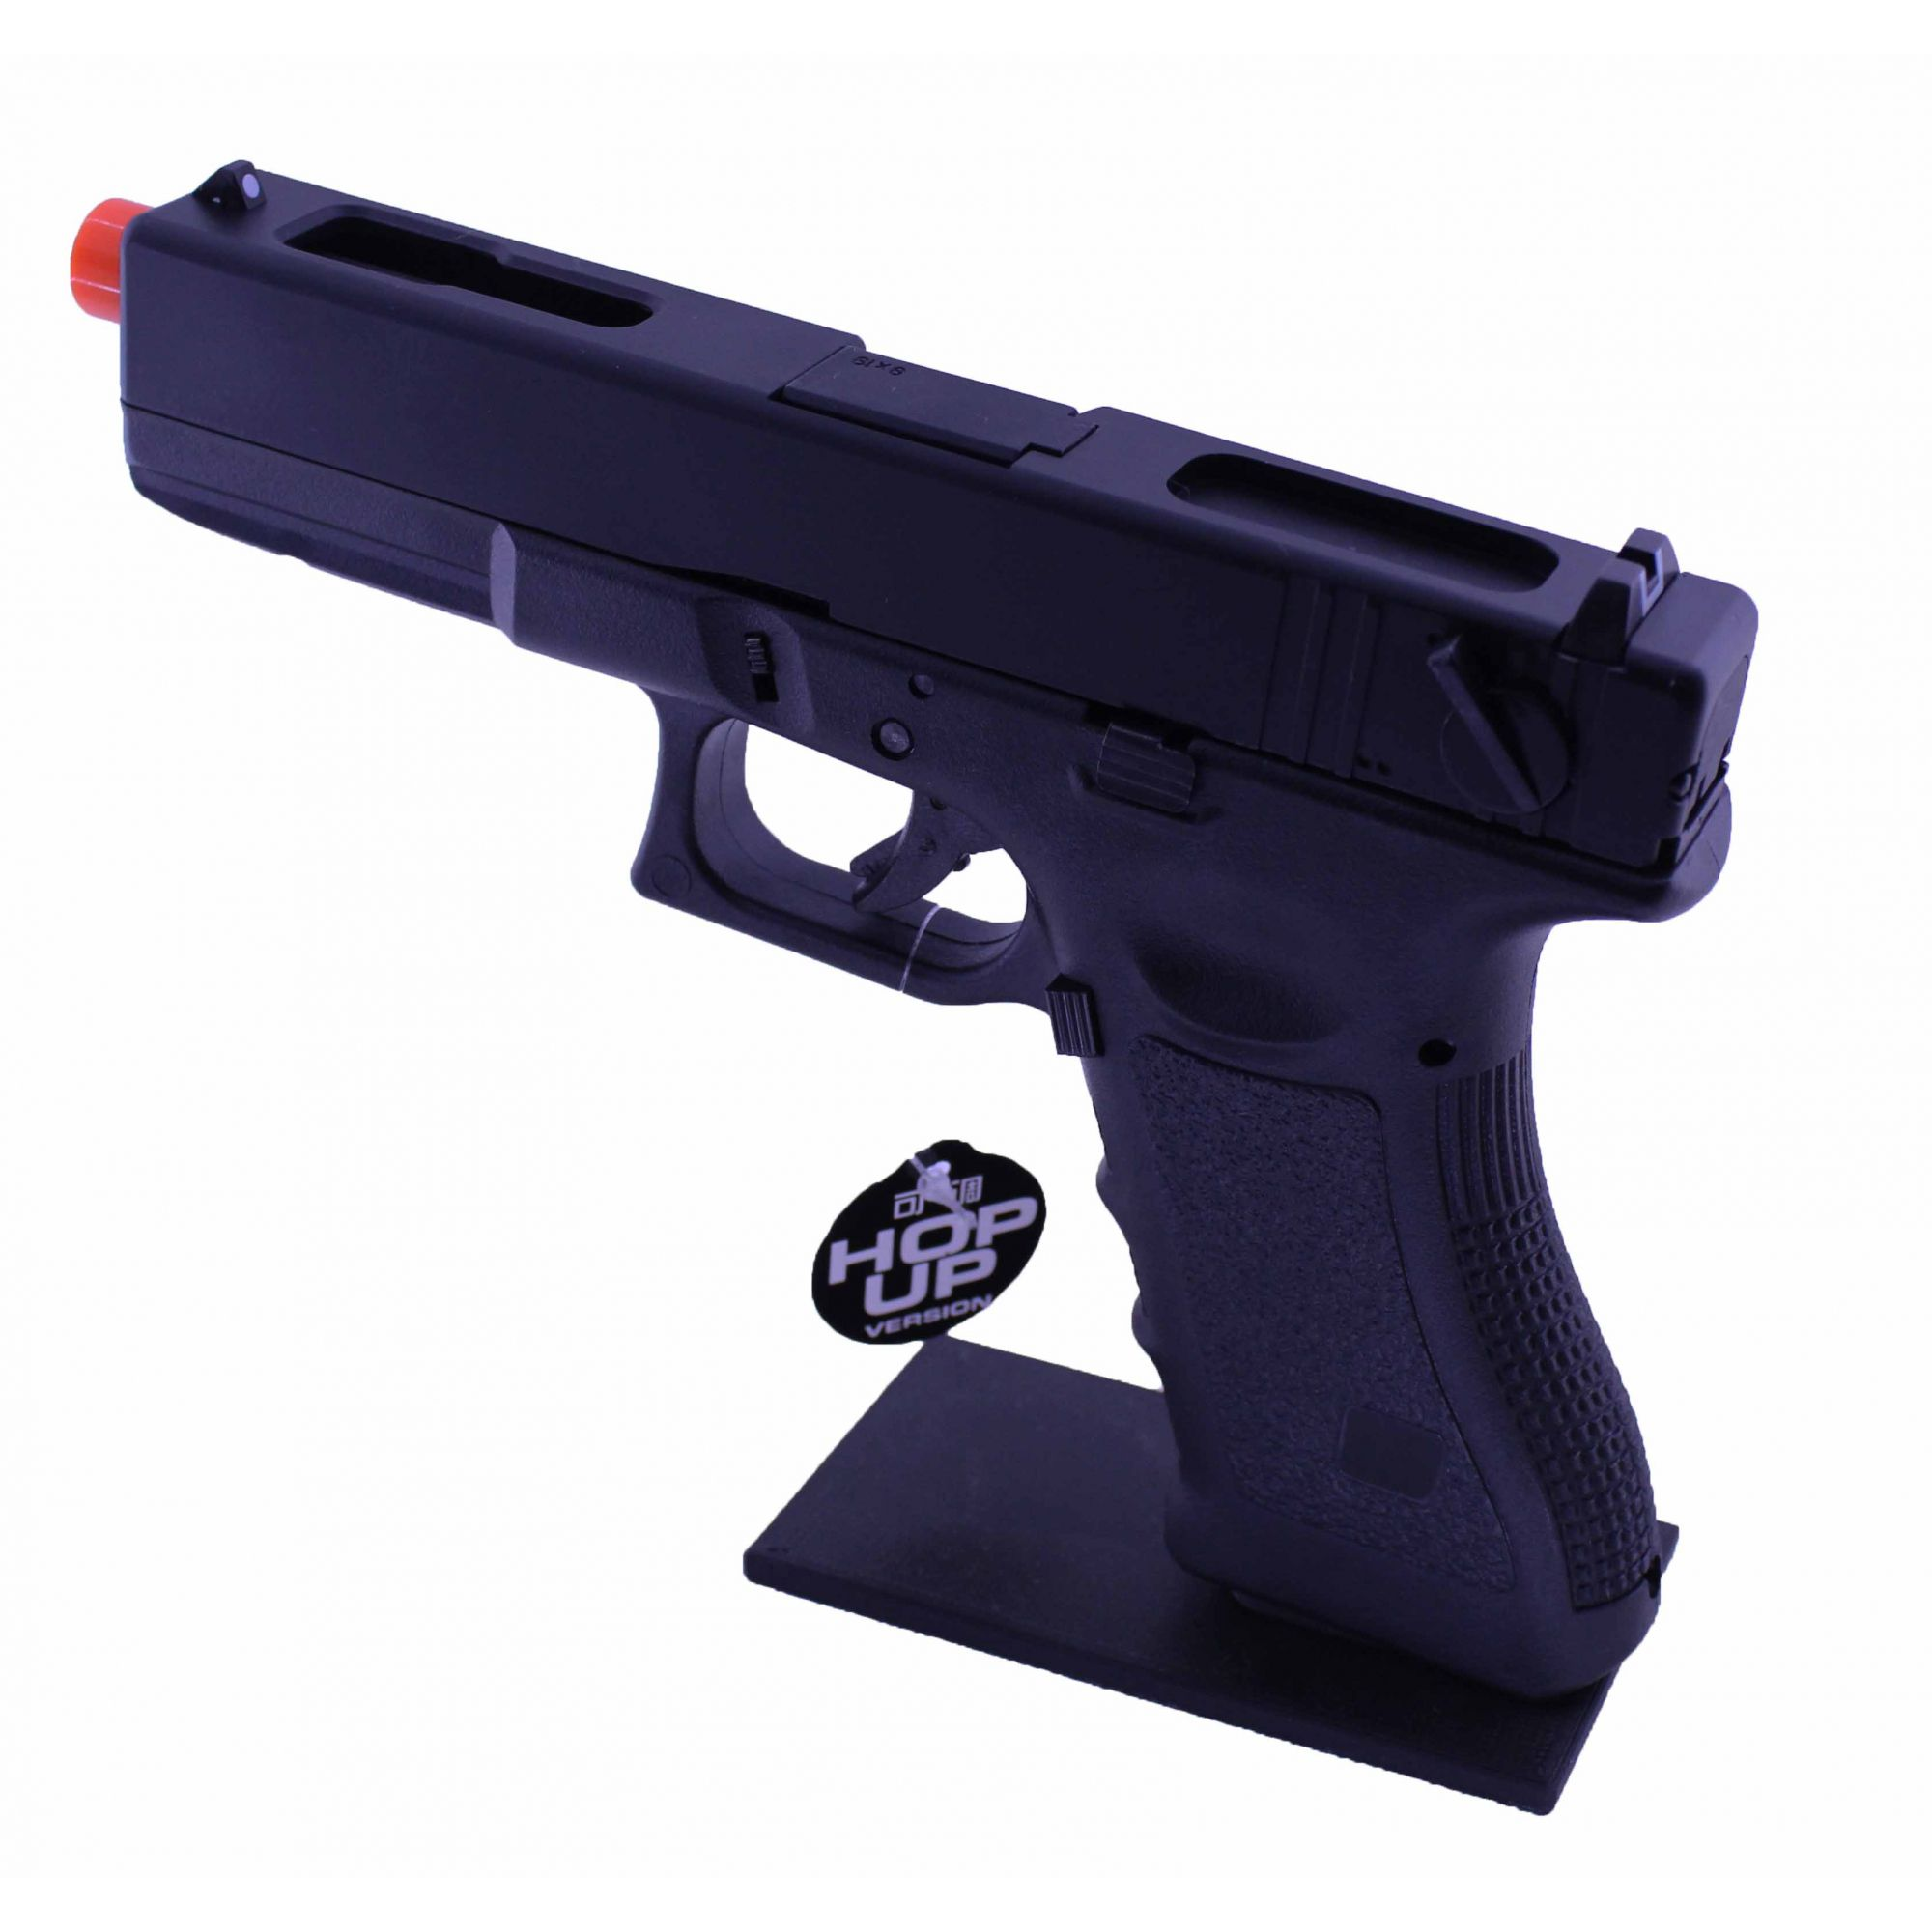 Pistola Airsoft GBB R18 Semi/Auto BK Blowback 6mm